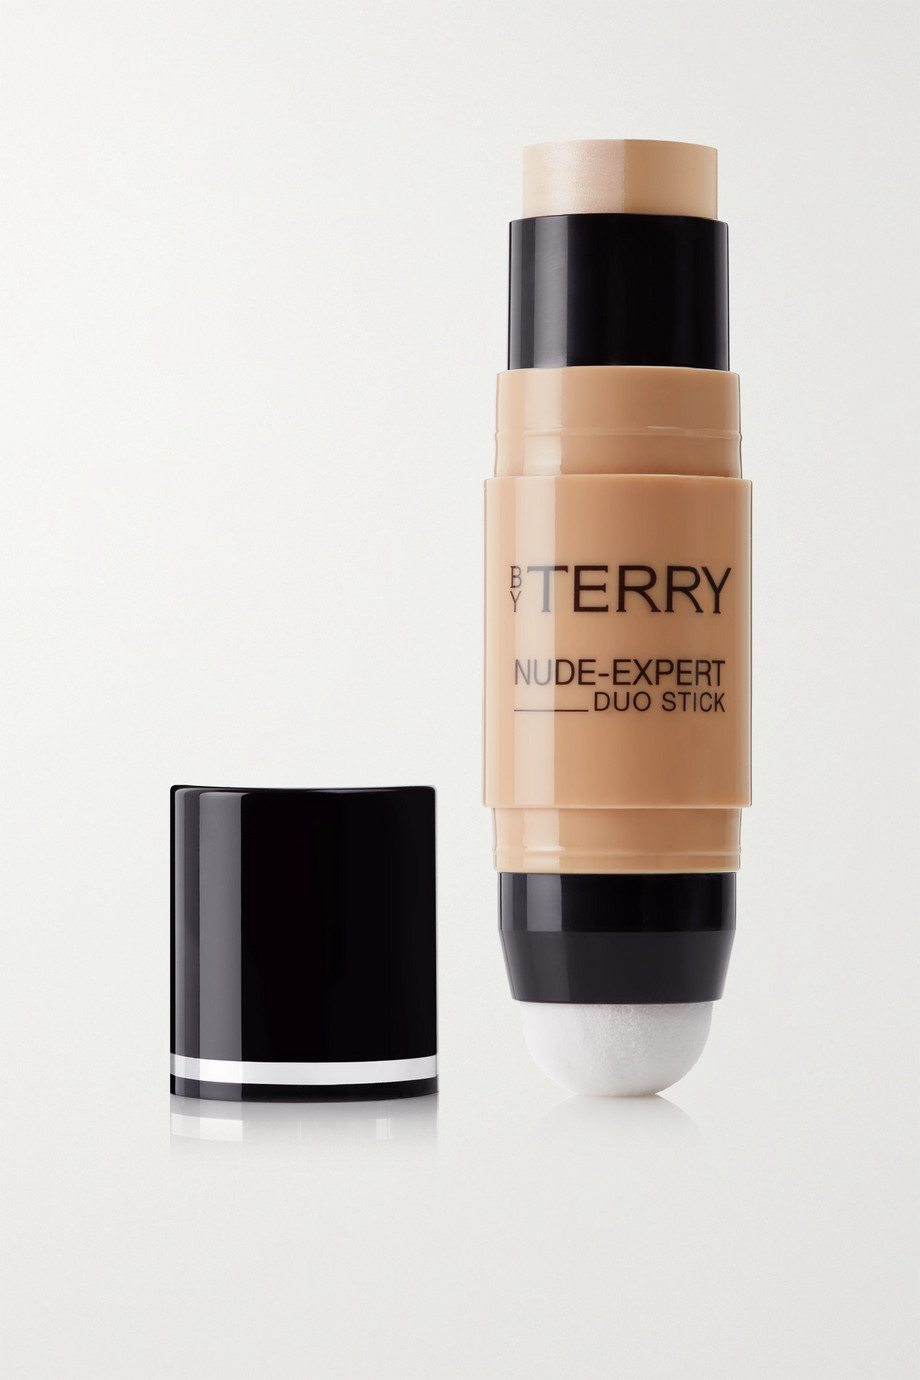 BY TERRY Nude Expert Foundation Duo Stick - Neutral Beige 2